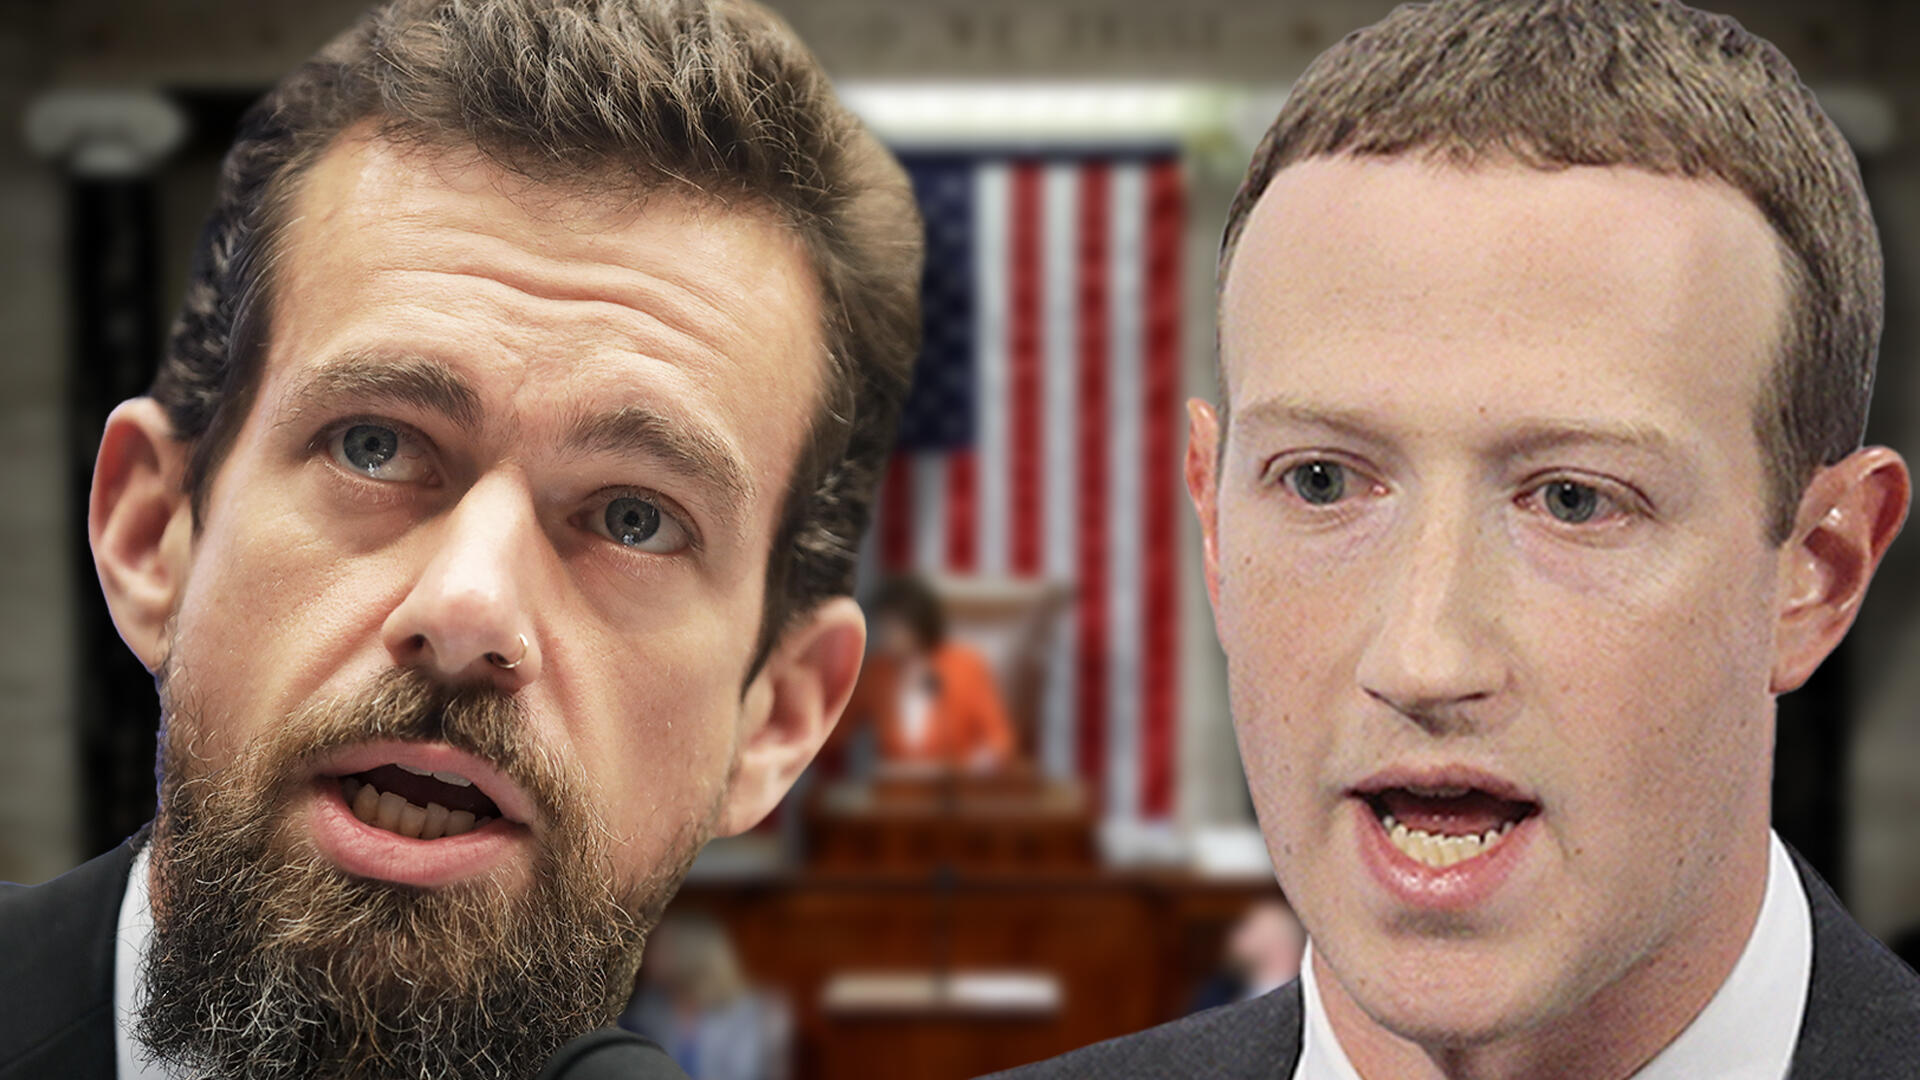 Watch Facebook and Twitter CEOs testify before Senate on 2020 election -- livestream